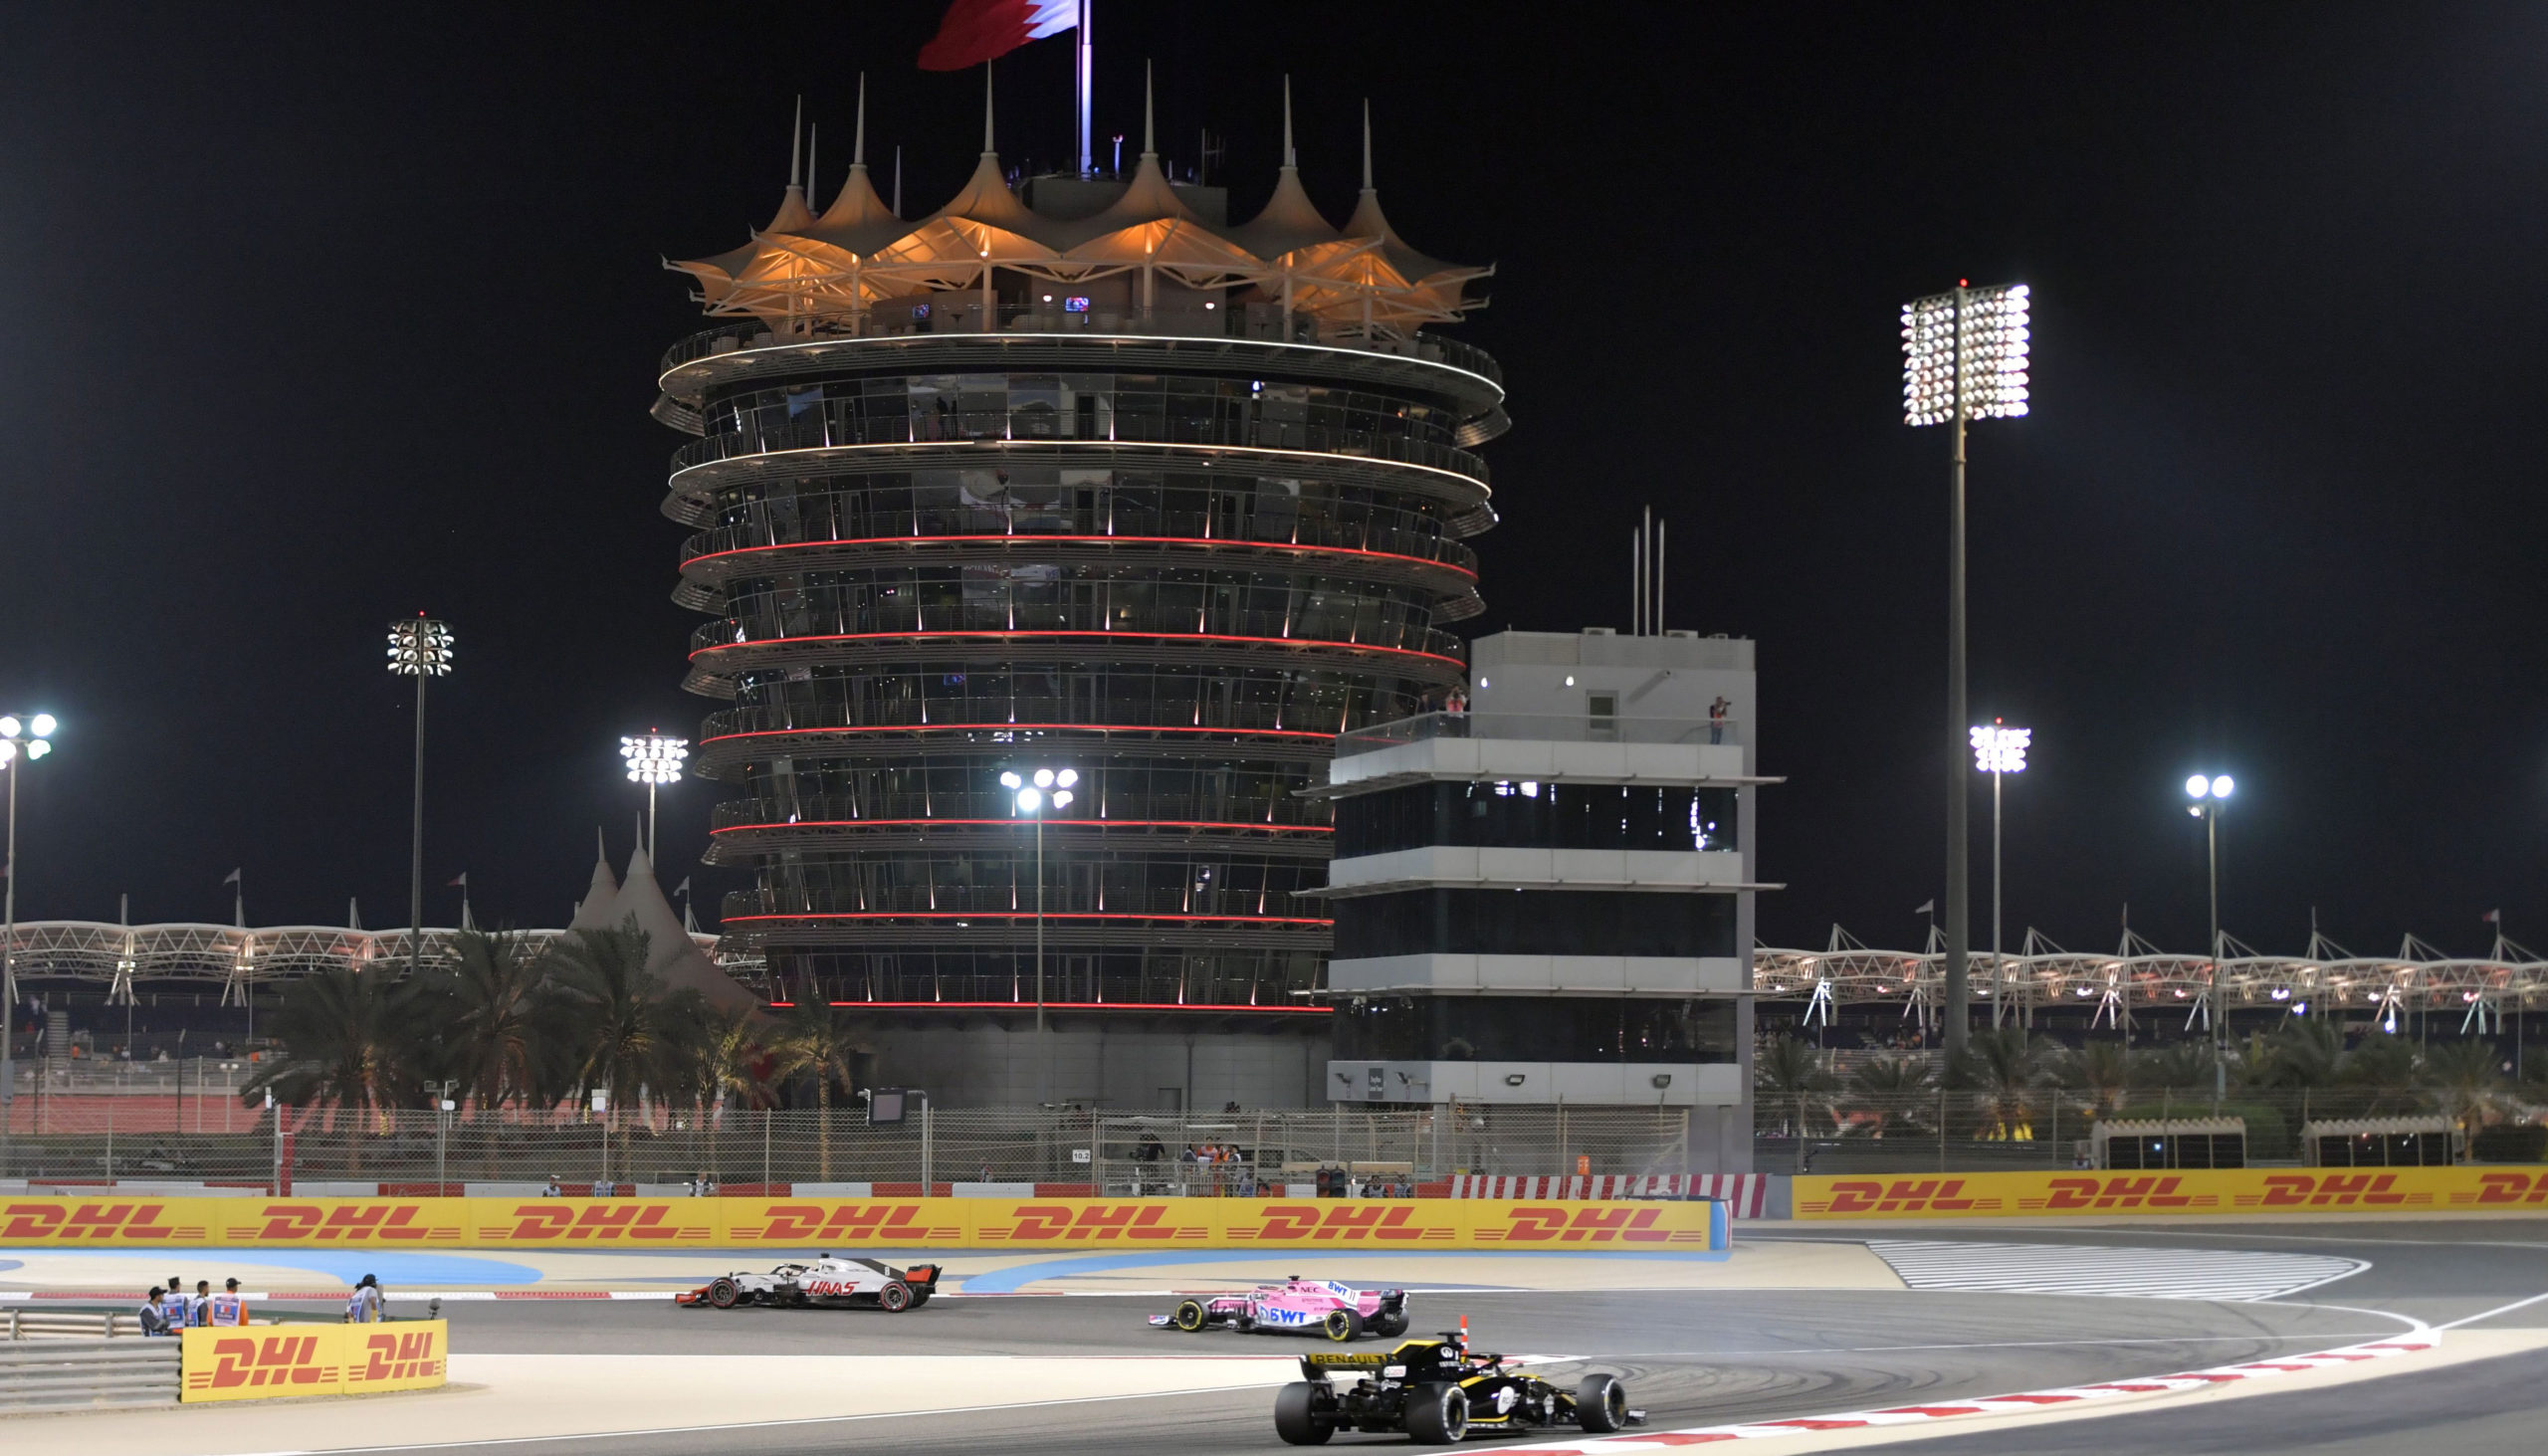 Bahrain Grand Prix: Bottas value for pole position